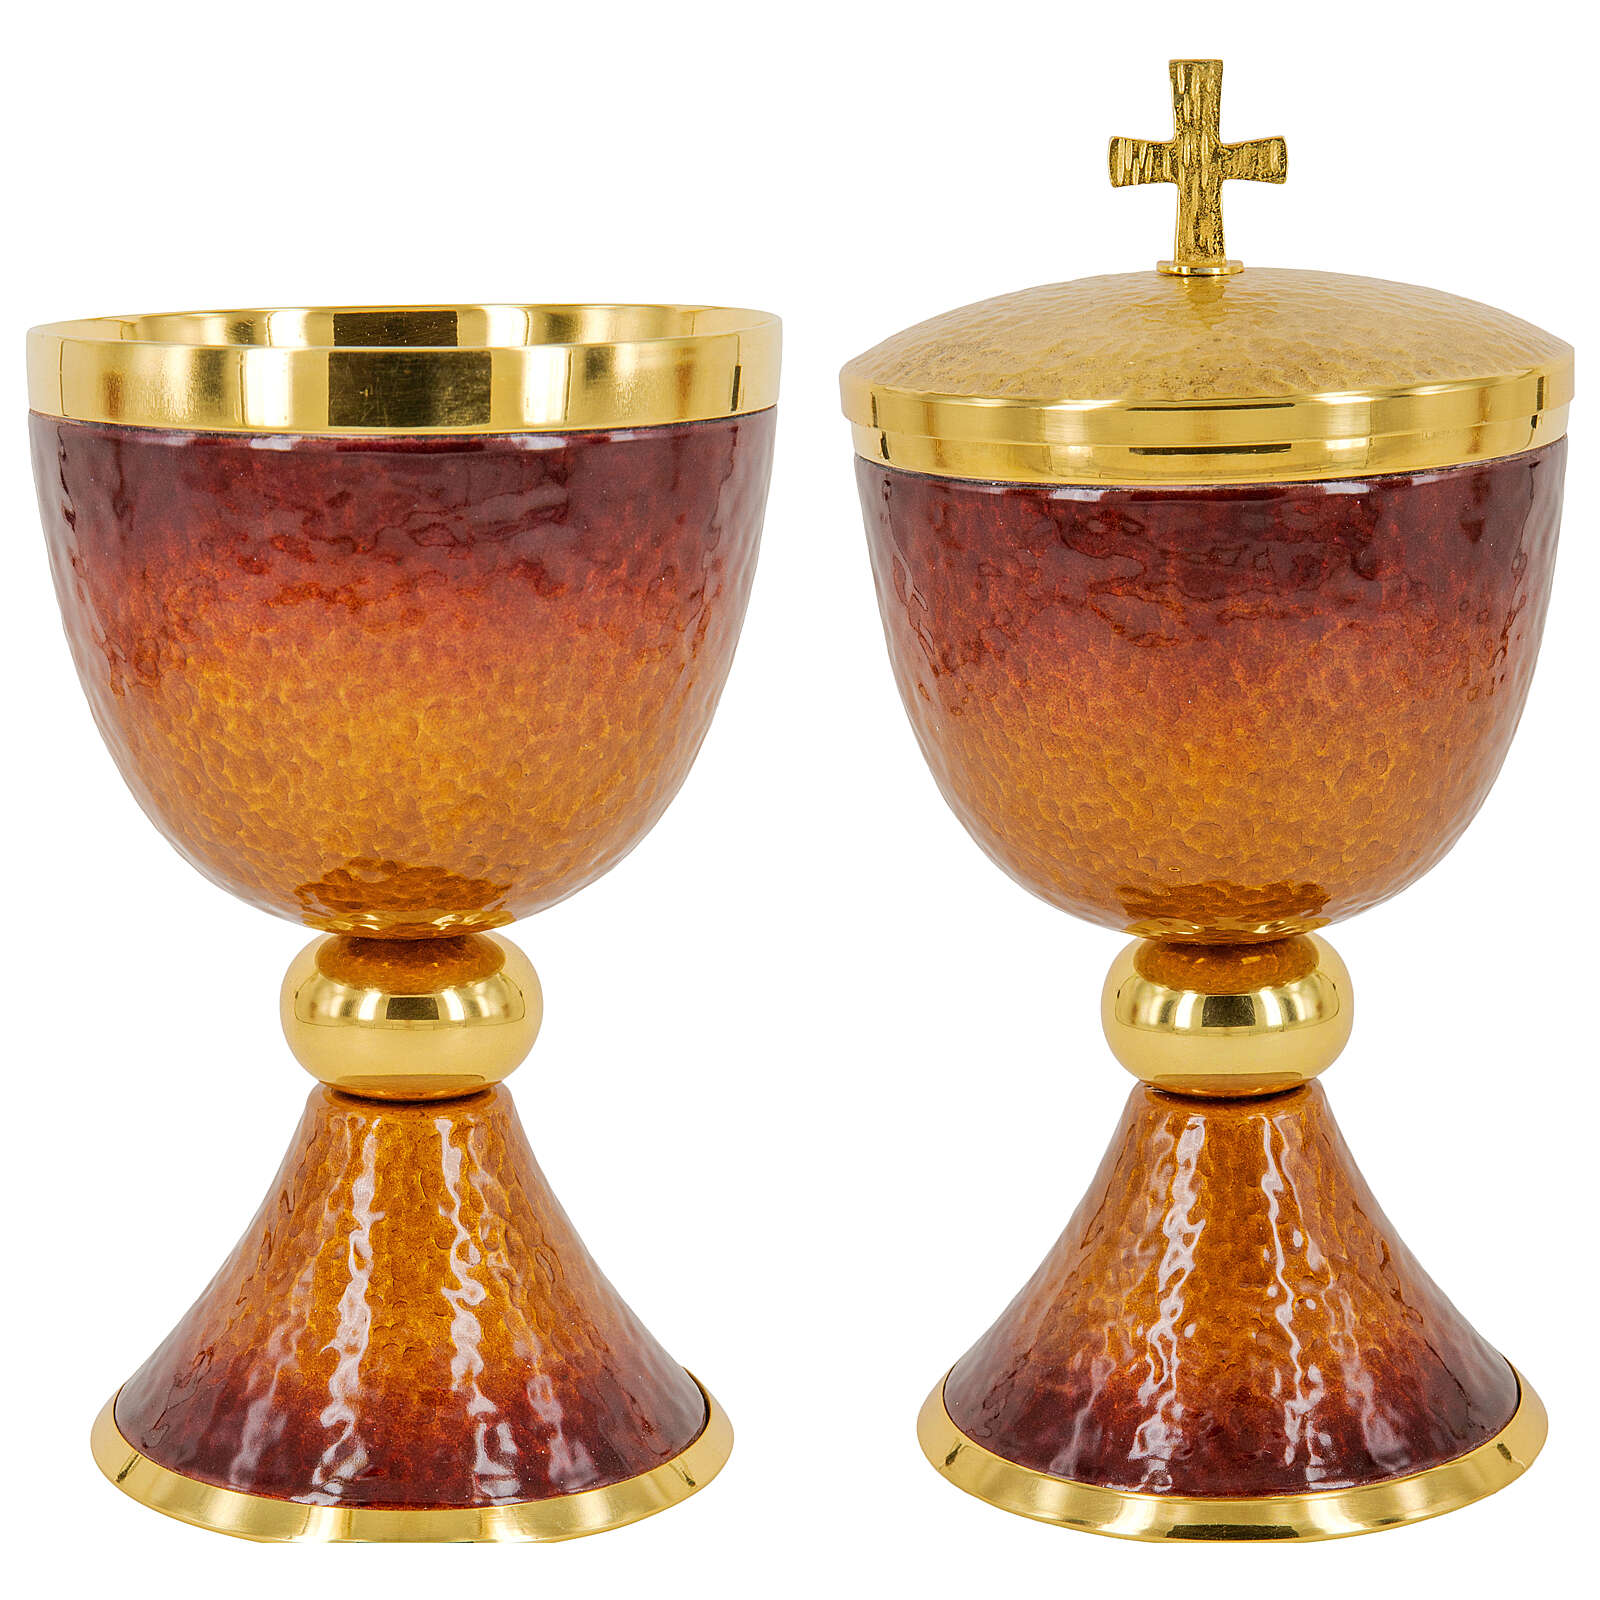 Chalice ciborium paten orange and red enamel and gold plated brass 4